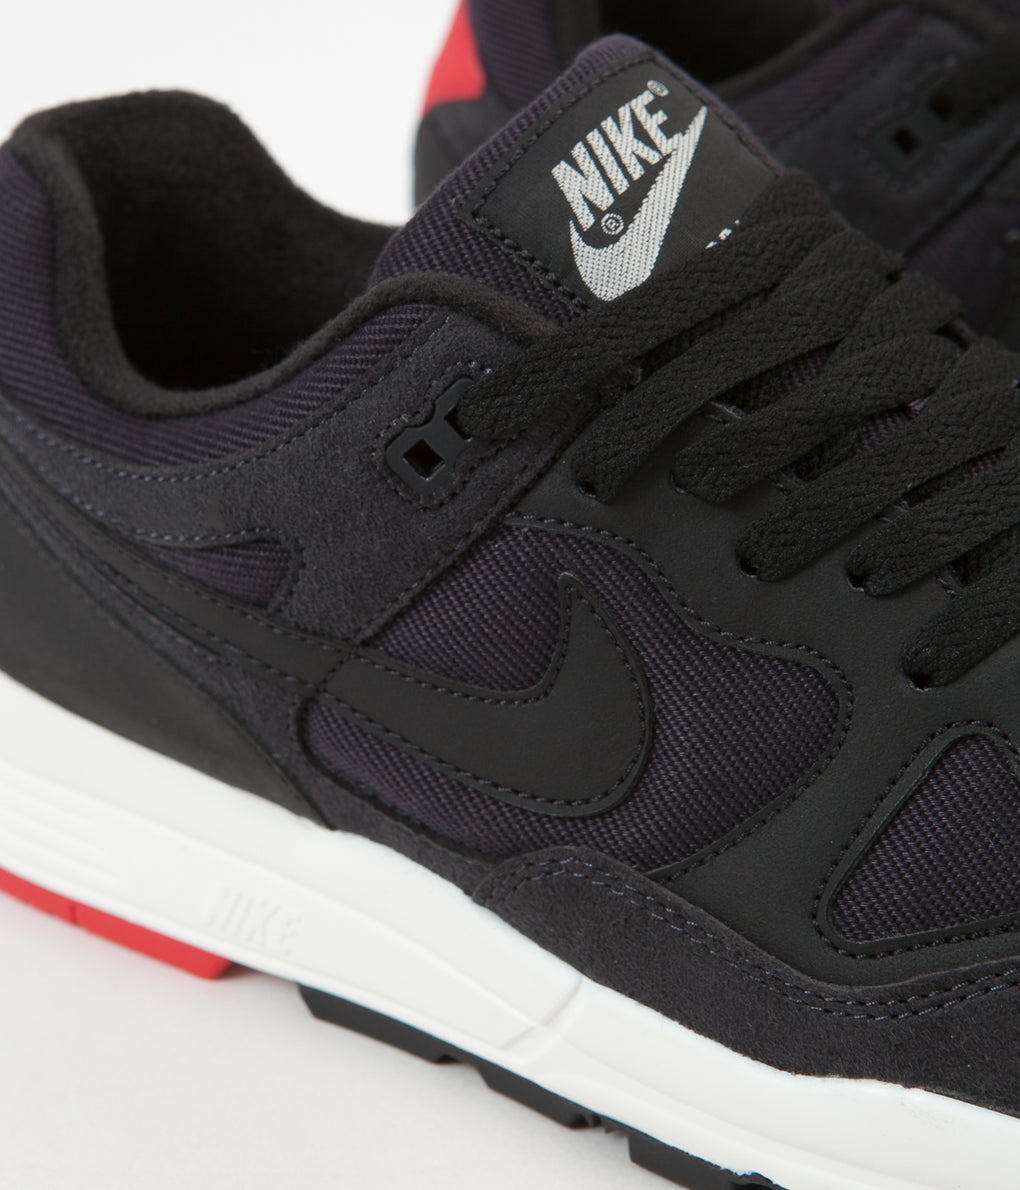 Nike Air Span II SE Shoes - Oil Grey / Black - University Red - Sail